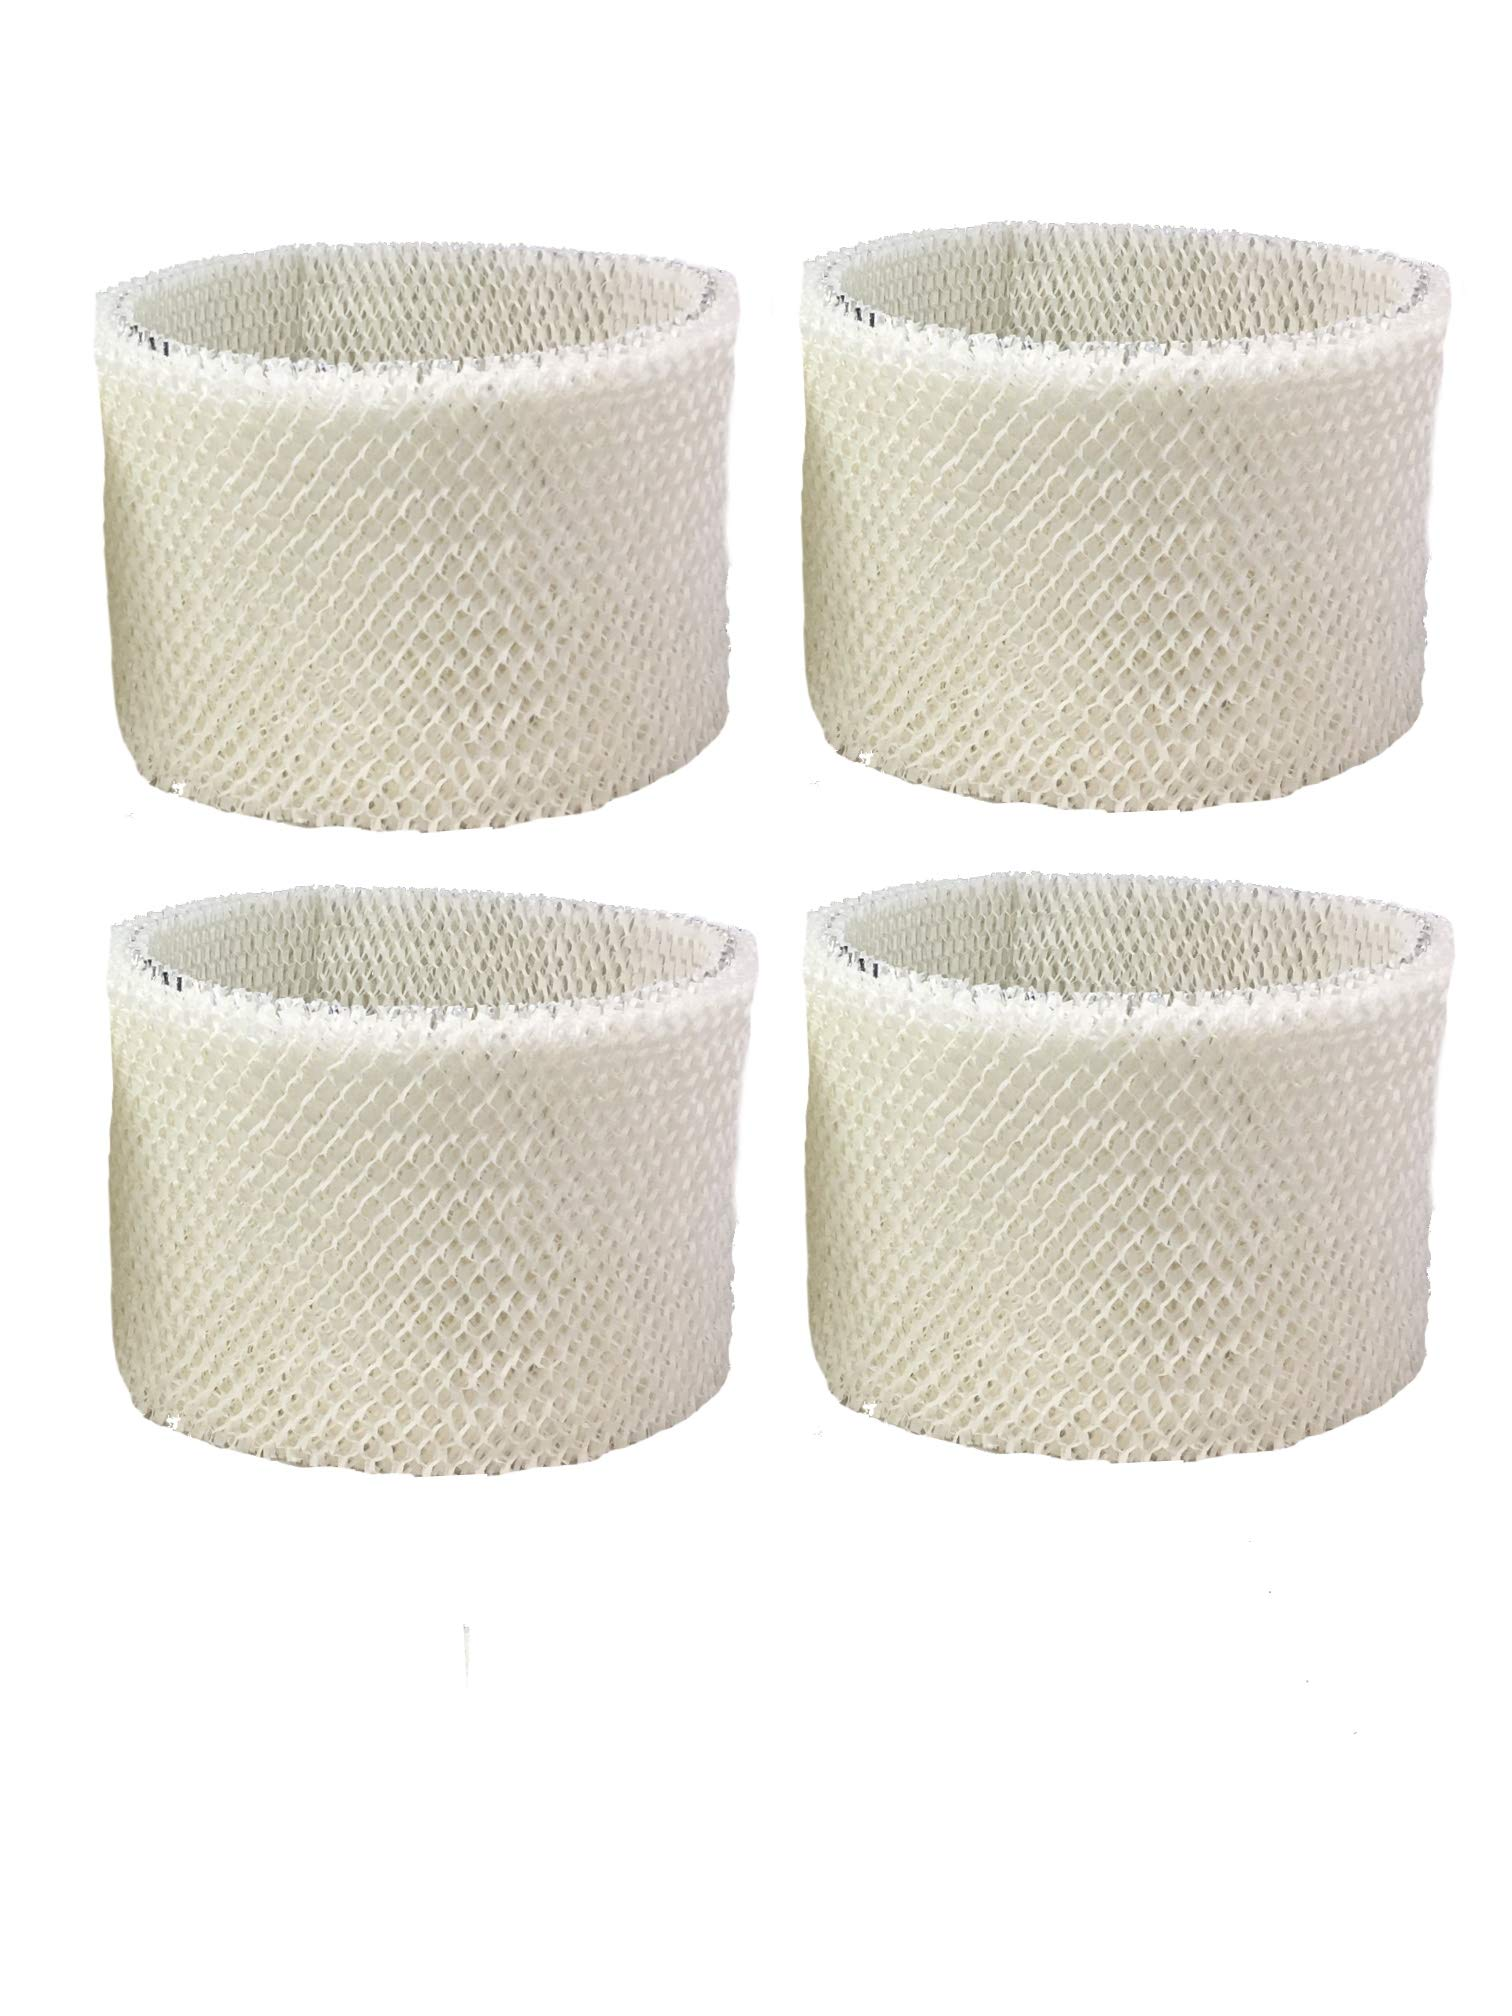 Air Filter Factory 4-Pack Compatible Replacement for Kenmore 15412 Humidifier Wick Filters by Air Filter Factory